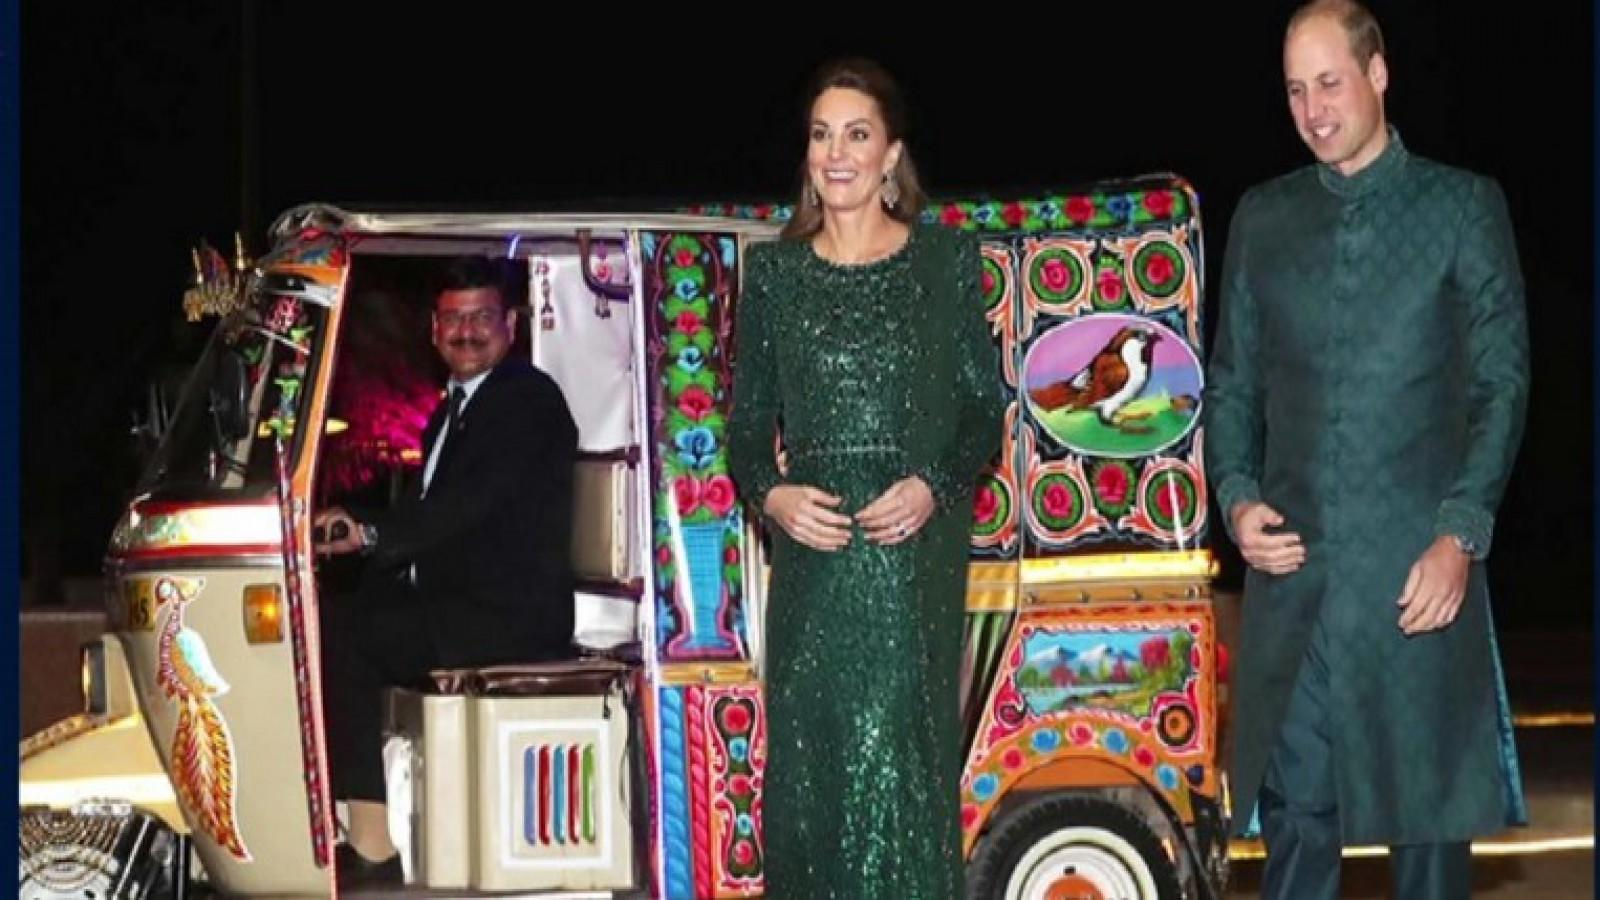 duke-and-duchess-of-cambridge-arrive-at-dinner-in-auto-rickshaw-in-pakistans-islamabad